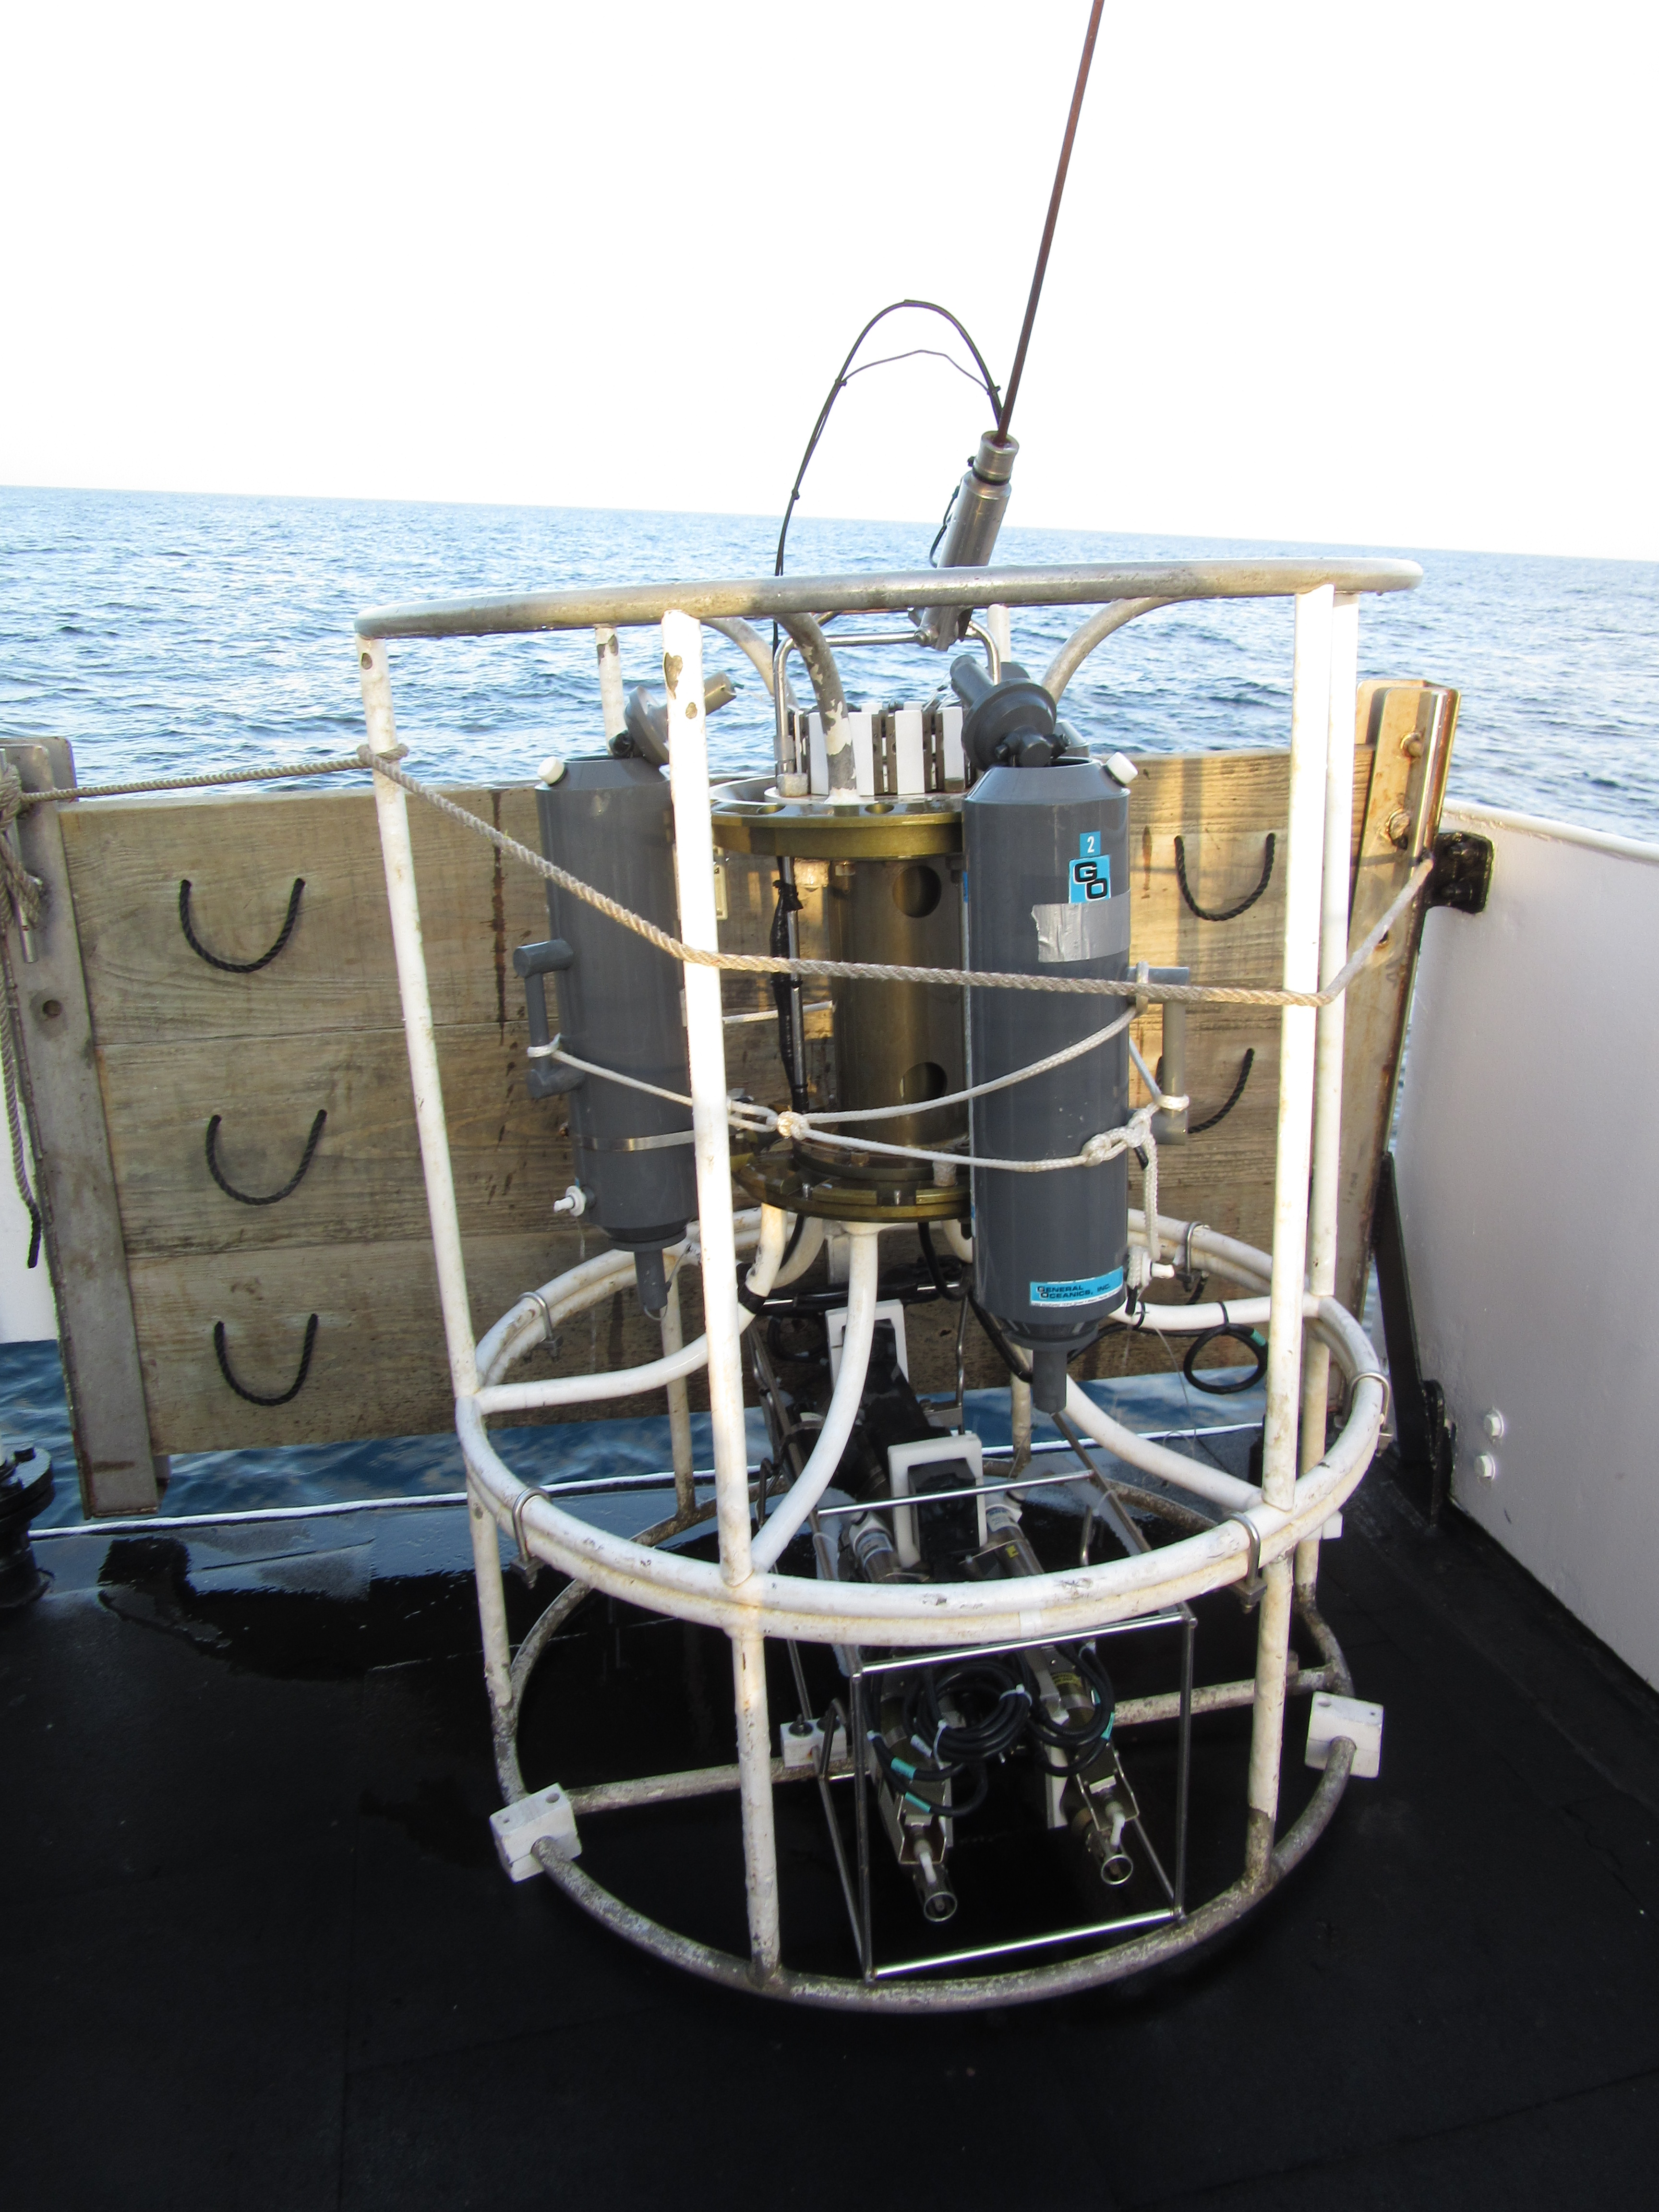 Conductivity, temperature, dissolved oxygen sensor (CTD). The gray cylinders are bottles that can store water samples.